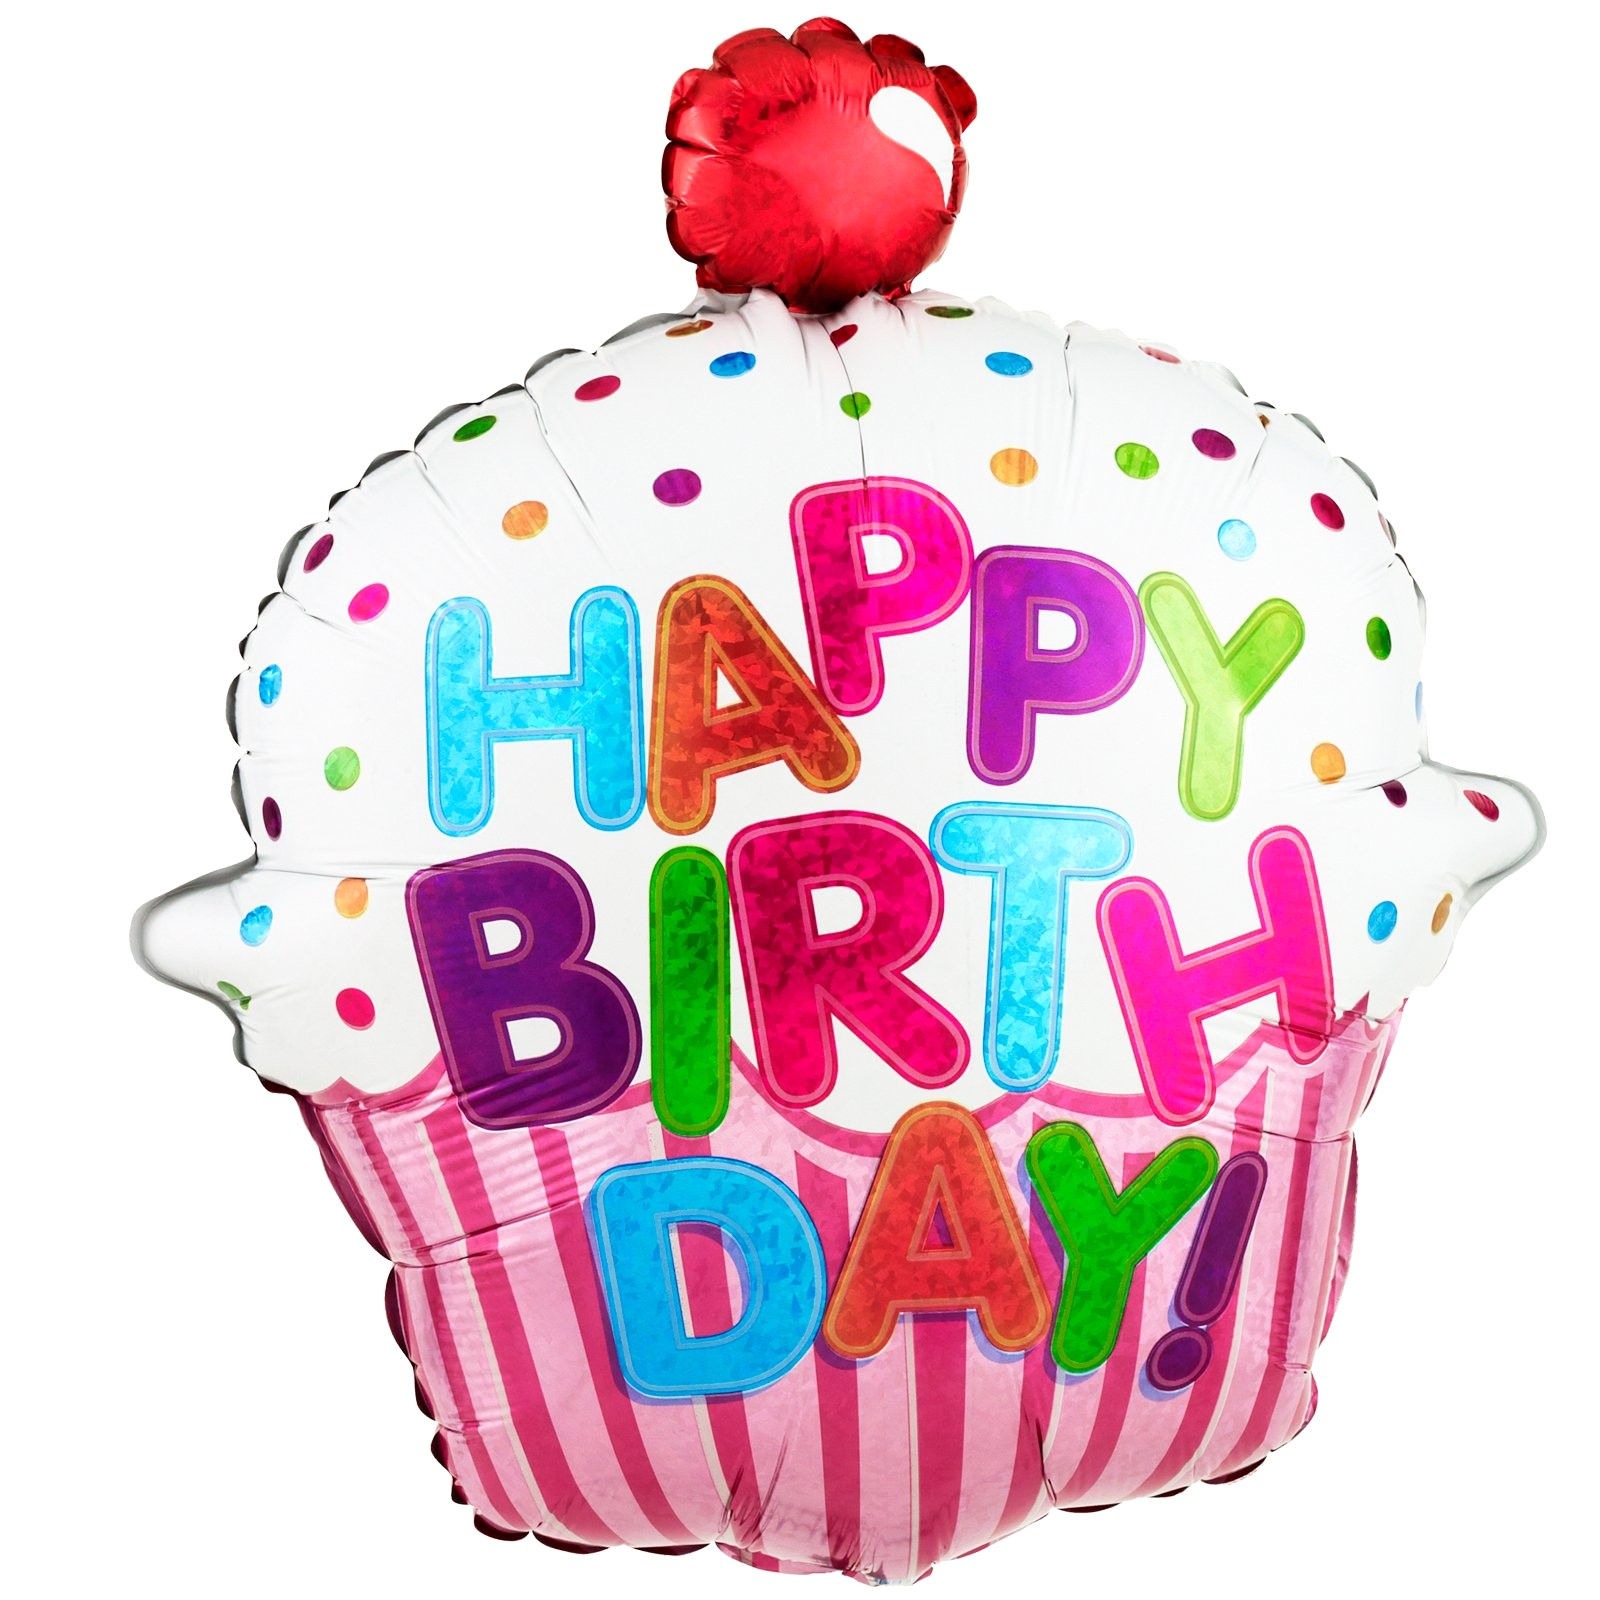 Happy birthday cupcake clipart 7 » Clipart Station.